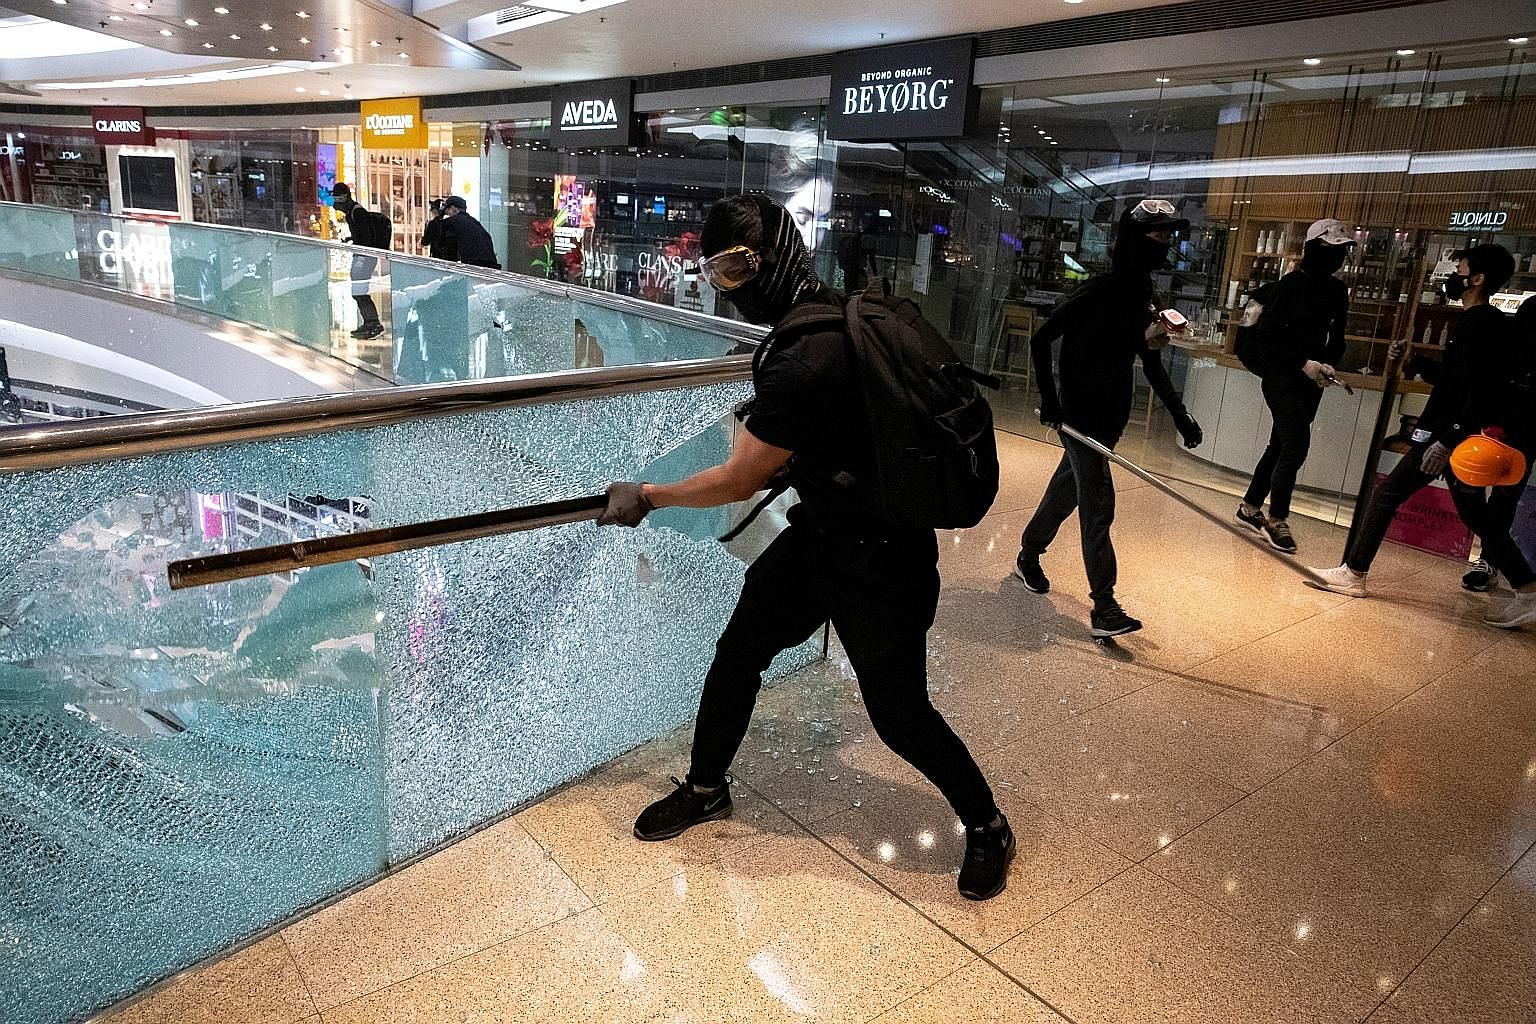 Protesters vandalising Festival Walk mall in Hong Kong on Nov 12. While Festival Walk is covered by insurance for damage and loss of income, uncertainty exists around the extent of coverage as well as the operating performance of the property after i